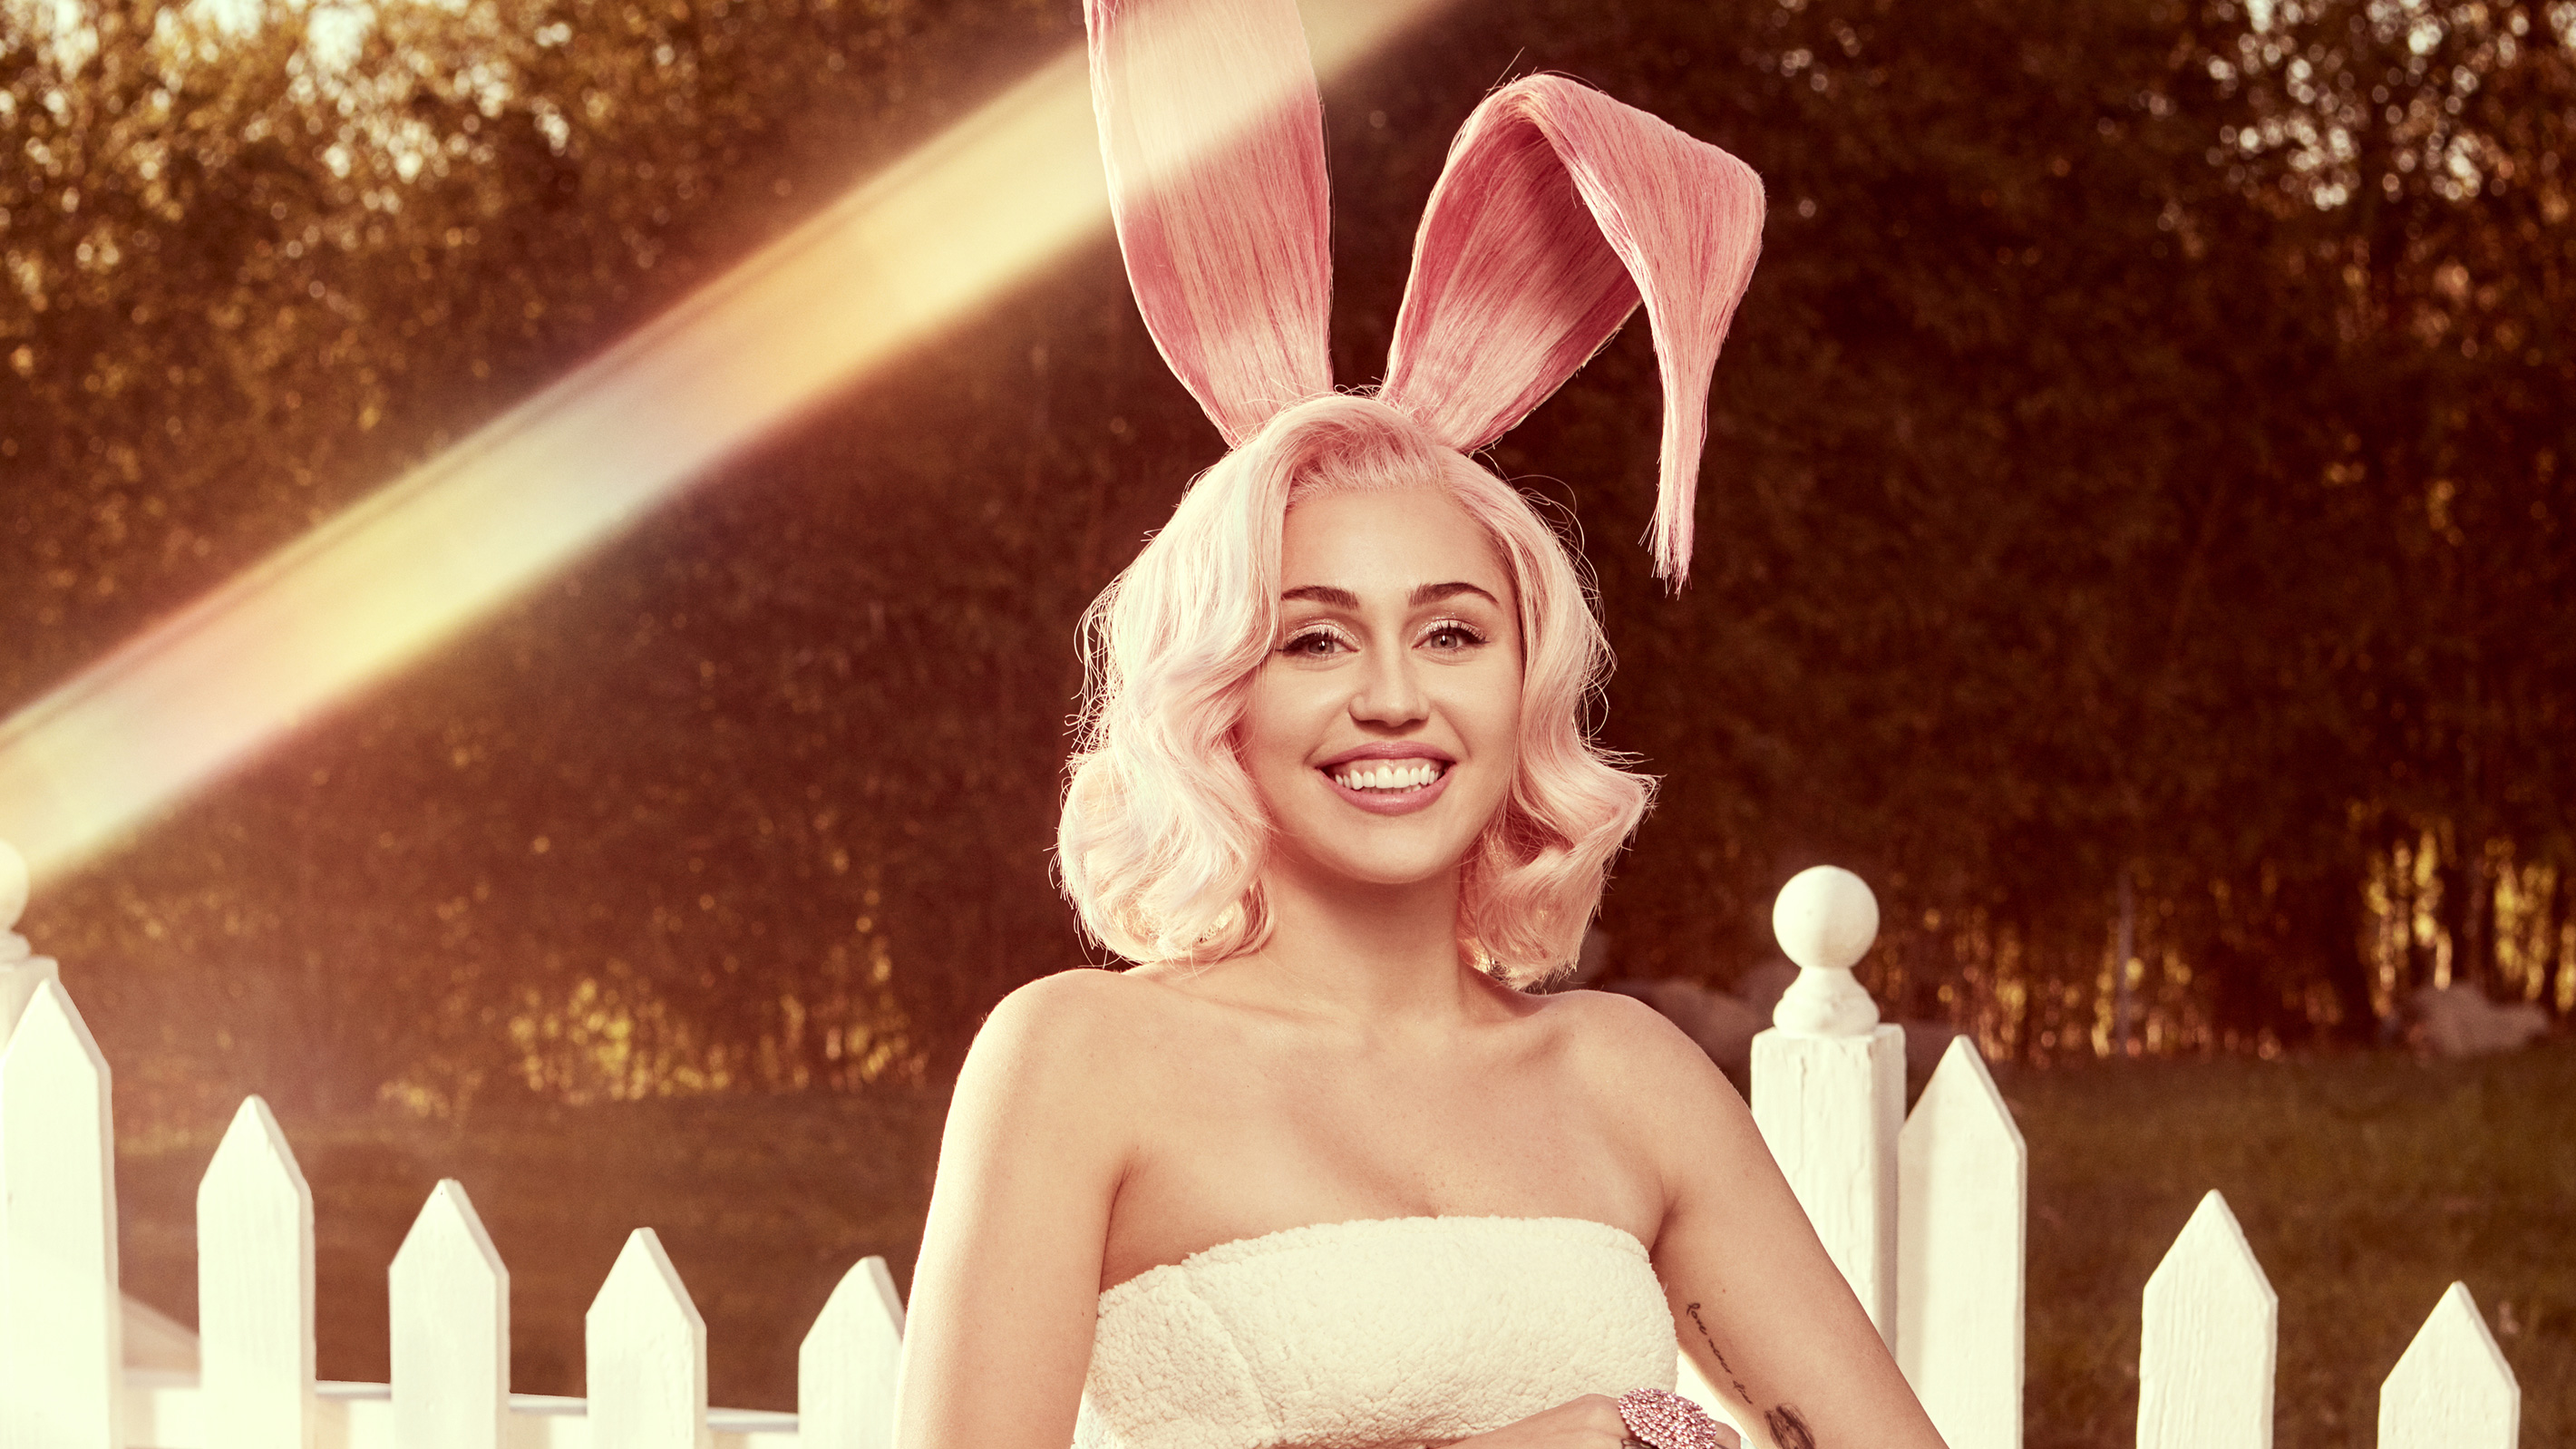 miley cyrus easter bunny 2018 wallpapers   wallpapers hd